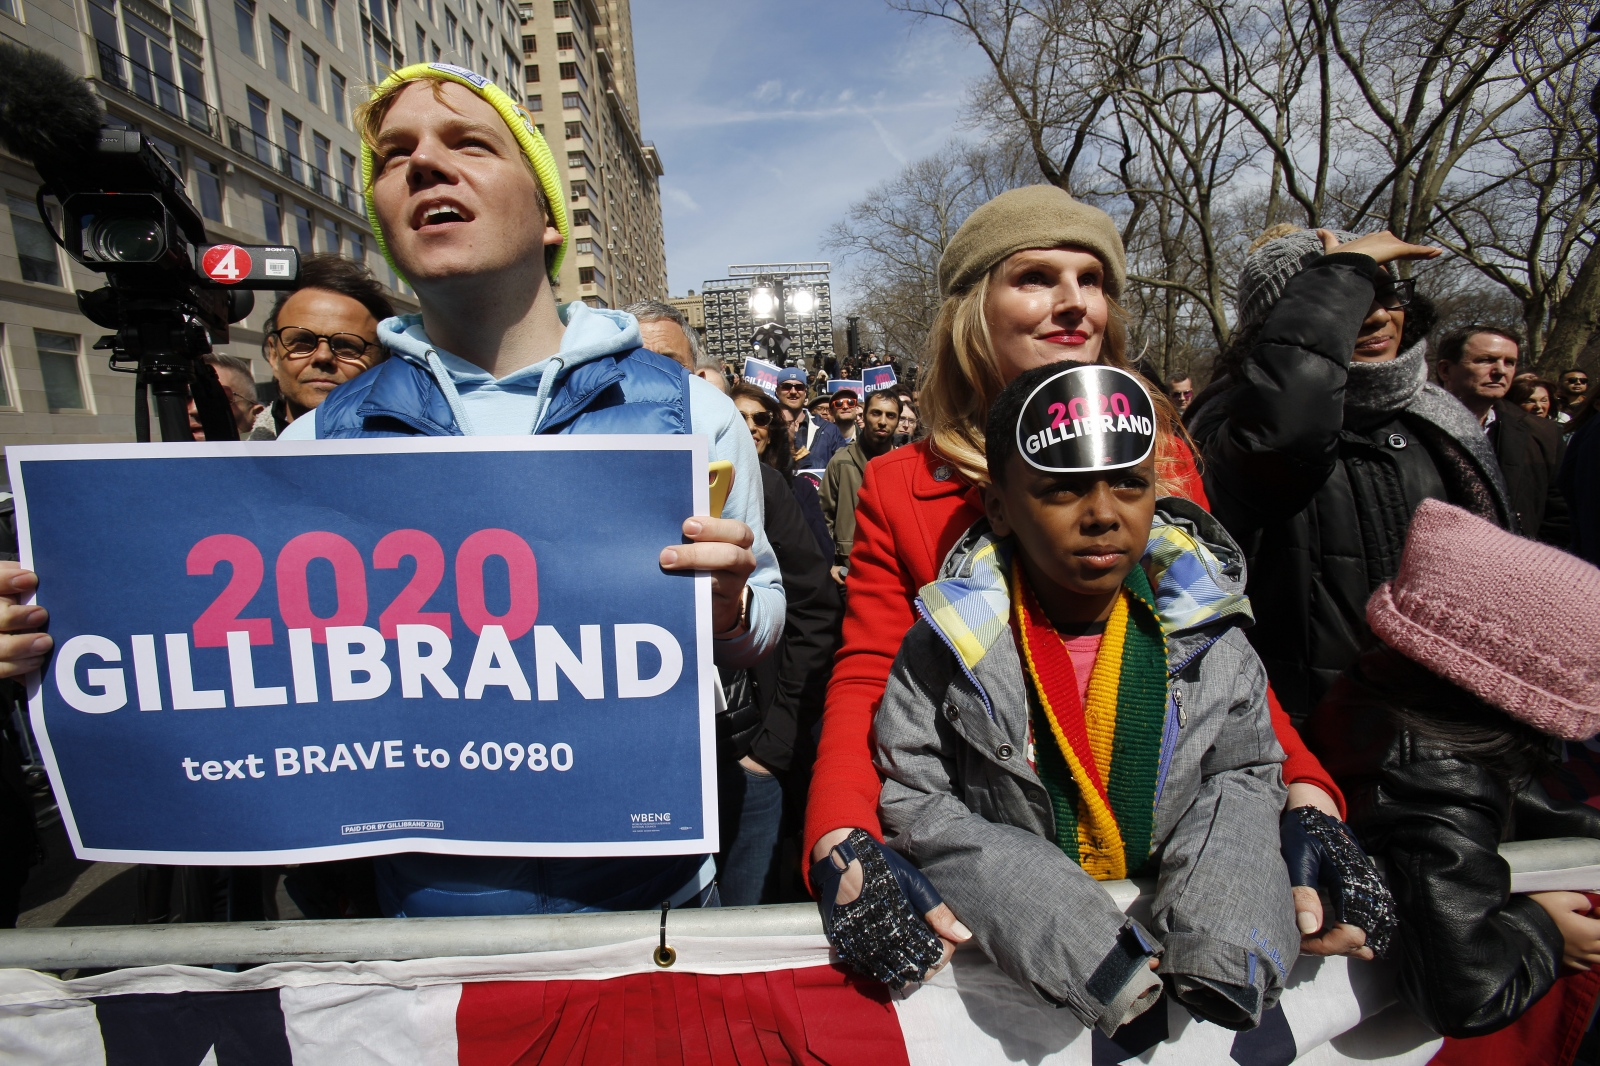 Supporters greet United States Senator Kirsten Gillibrandat as she kicks off  her presidential campaign in Manhattan in front of Trump International Hotel, New York, March 24, 2019